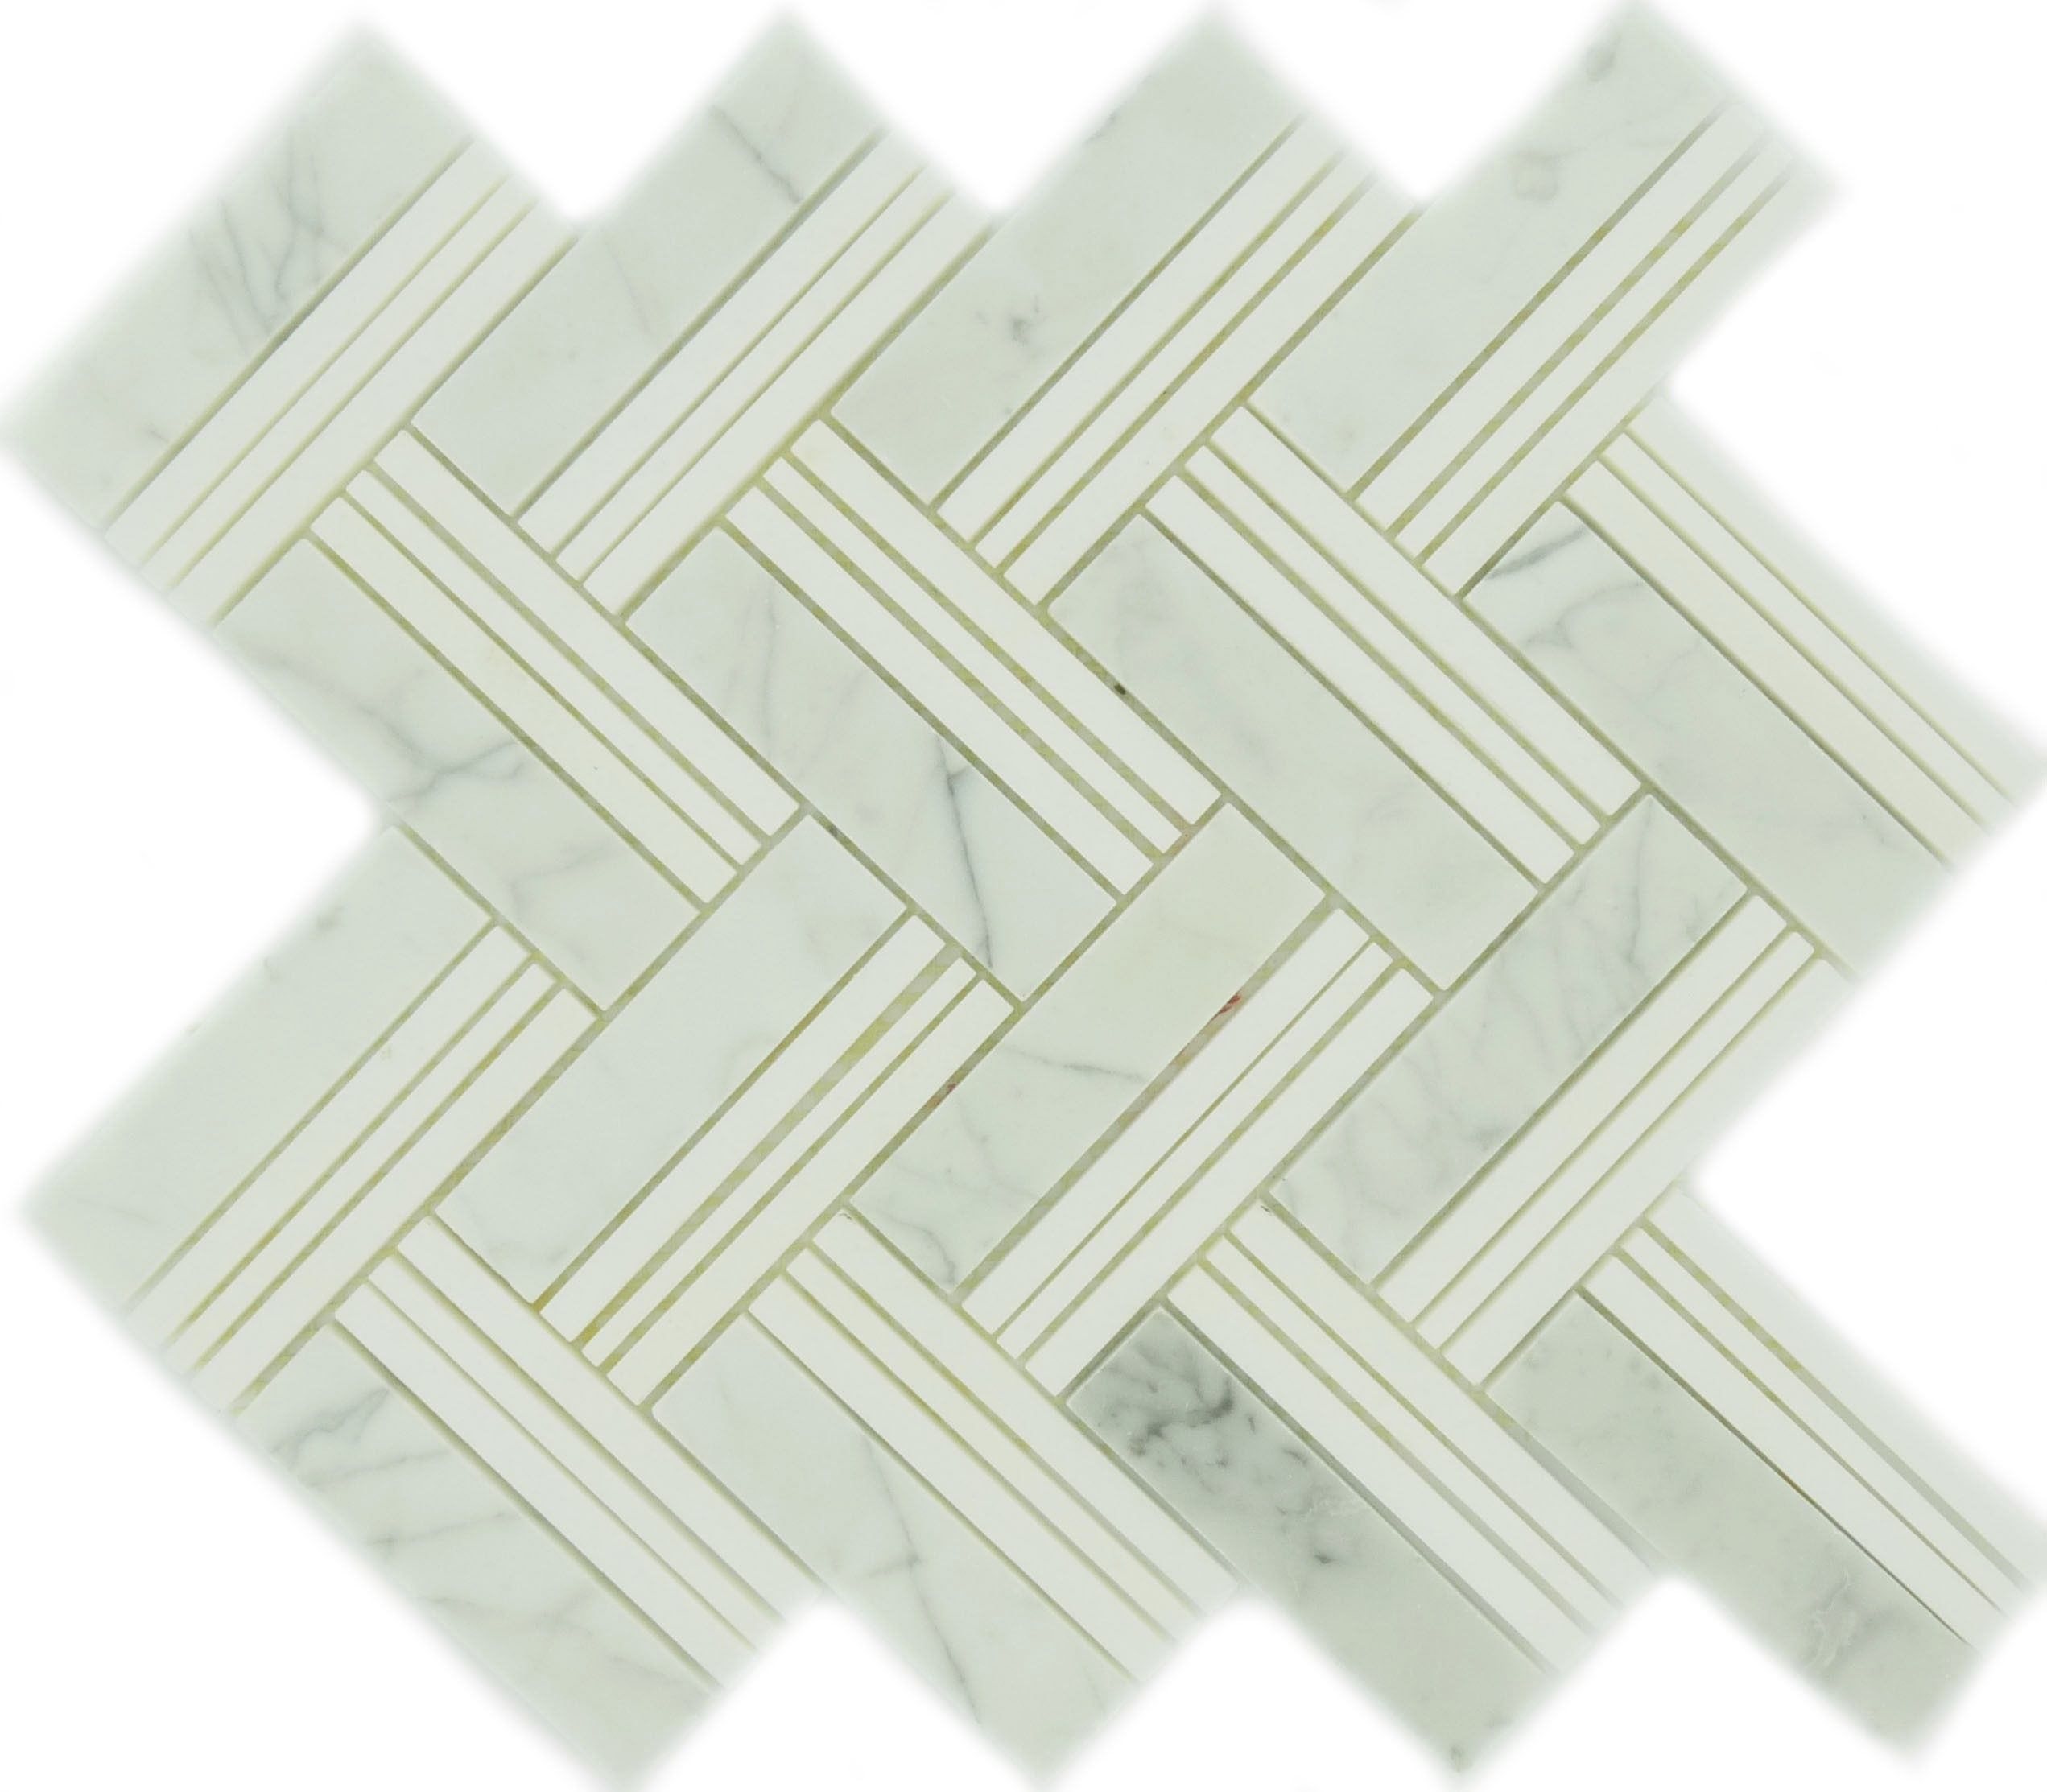 Sheet Size 12 3 4 X 14 3 4 Tile Size 3 16 5 16 1 X 4 Tiles Per Sheet 64 Stone Tiles Glass Tile Backsplash Kitchen Stone Backsplash Kitchen